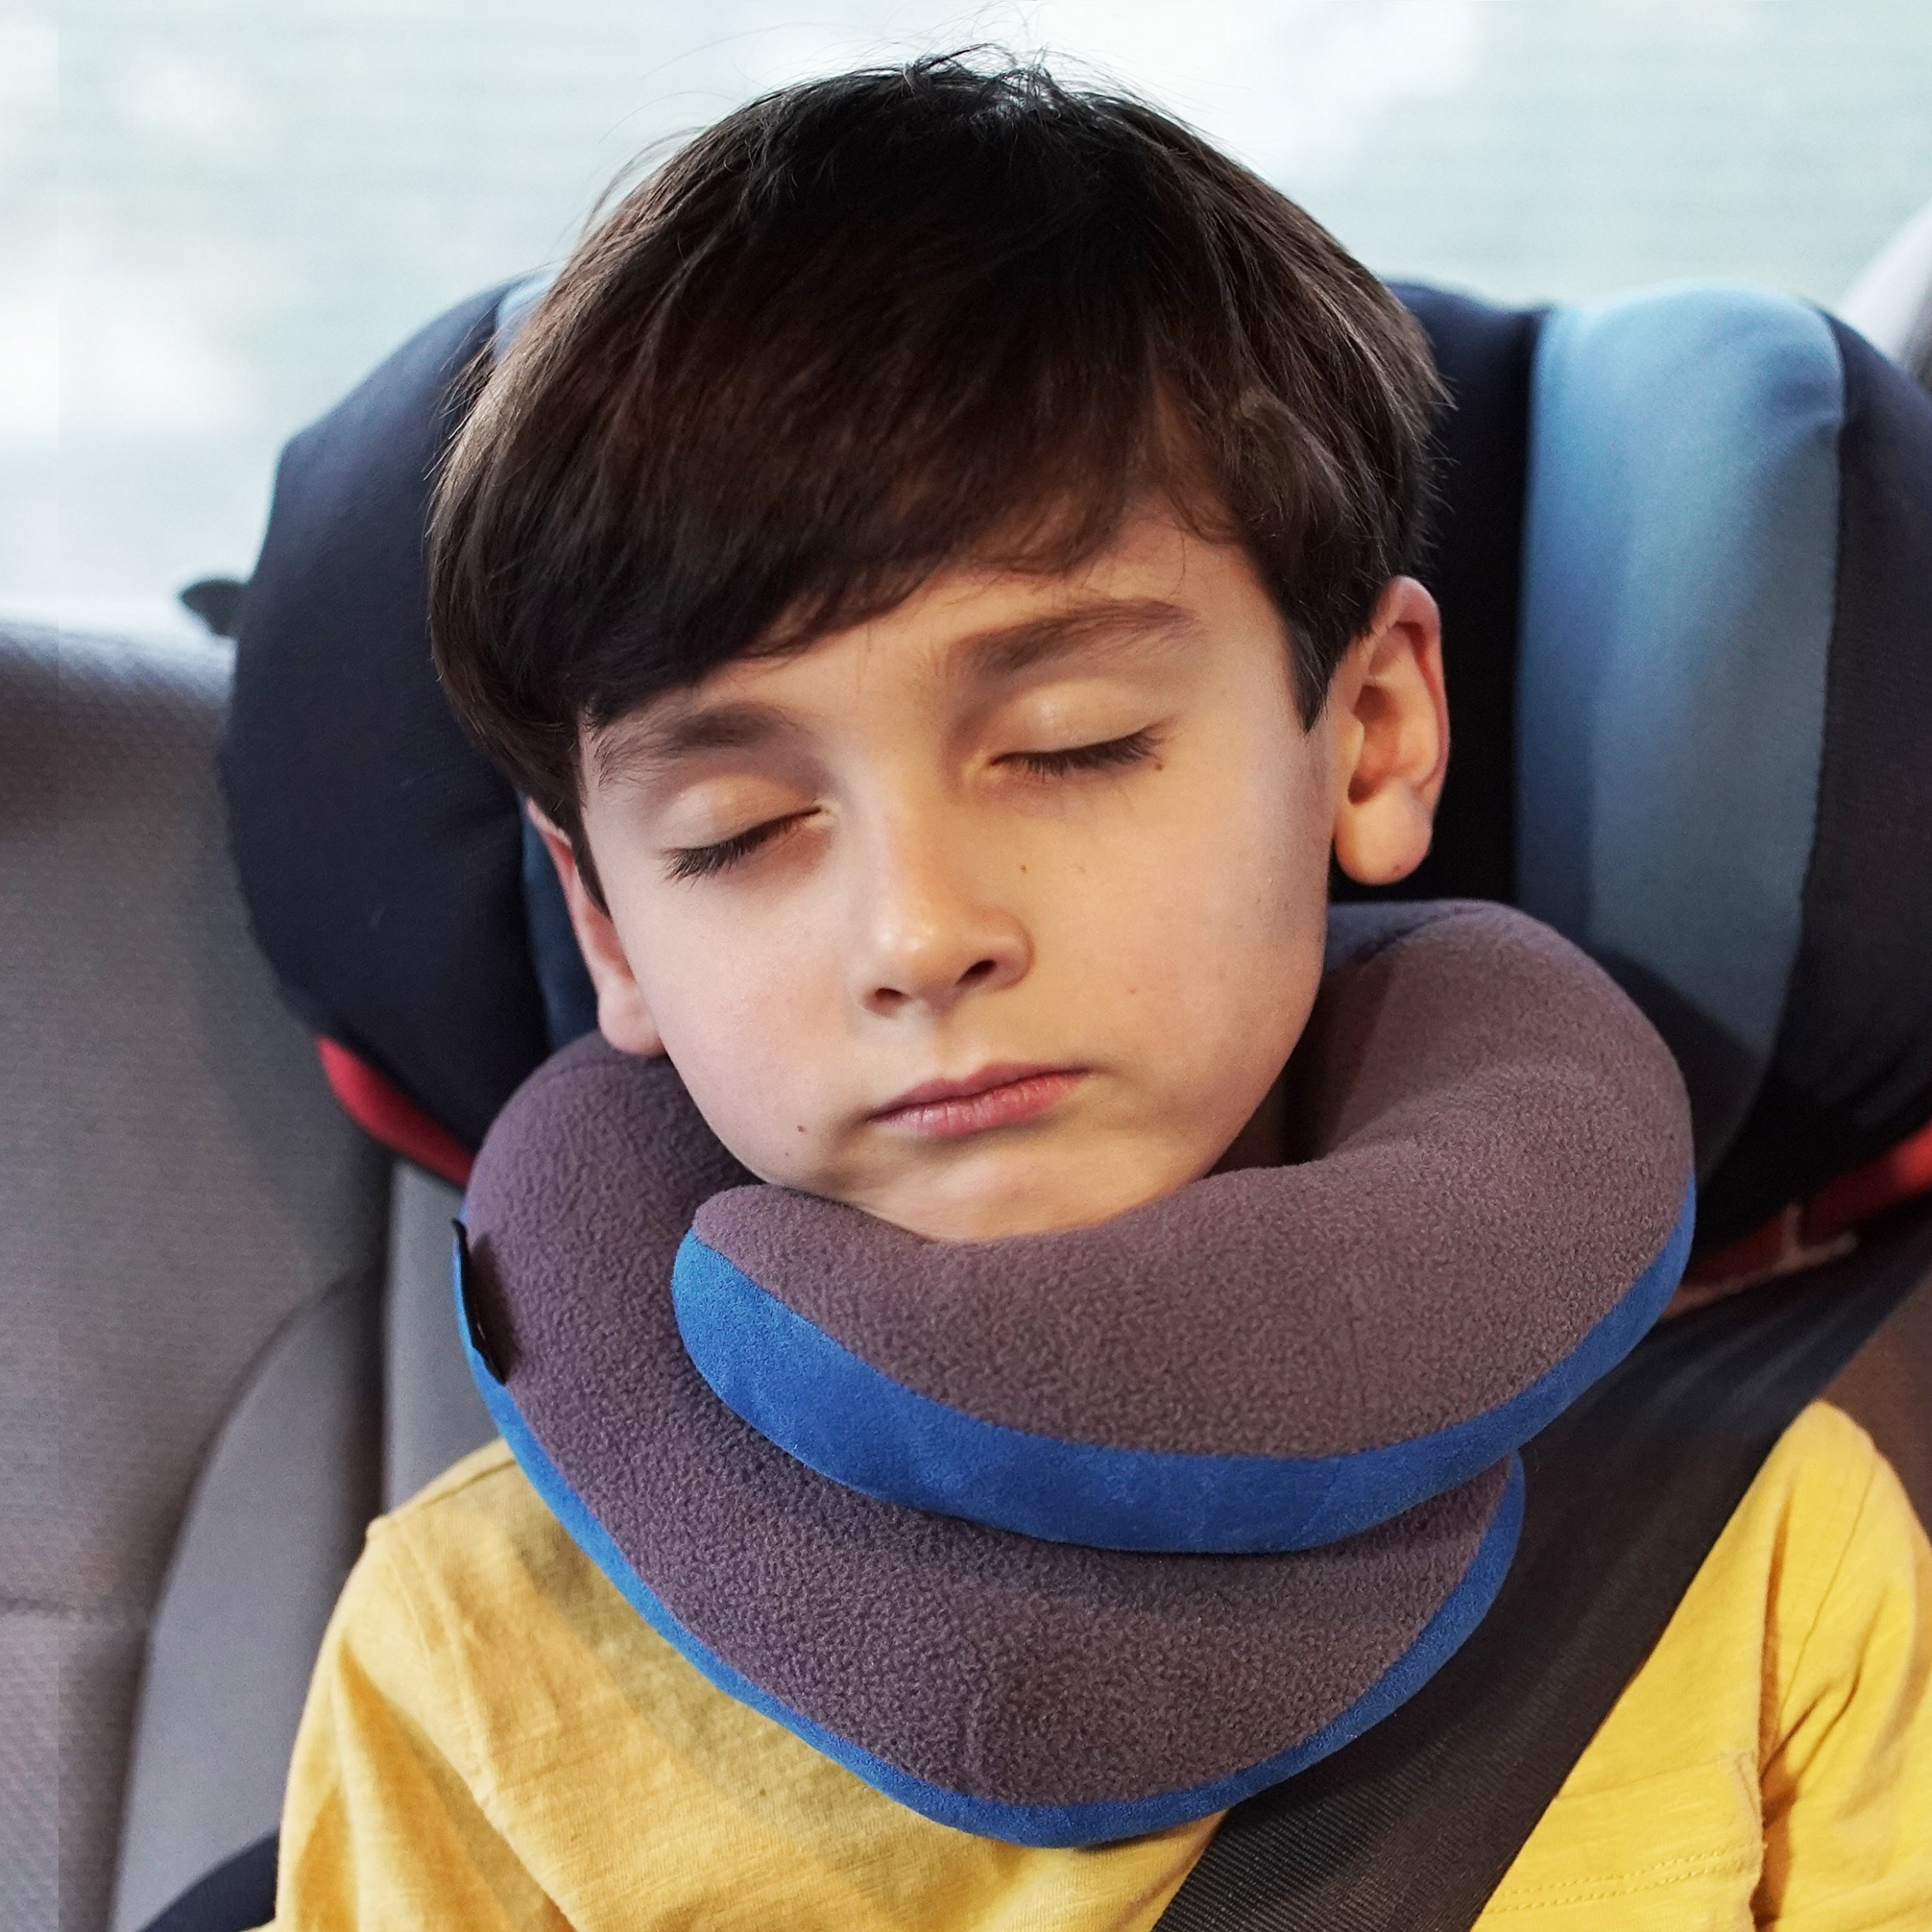 BCOZZY Kids Chin Supporting Travel Neck Pillow - Supports The Head, Neck Chin in in Any Sitting Position. A Patented Product. Child Size, Turquoise Hearts by BCOZZY (Image #3)